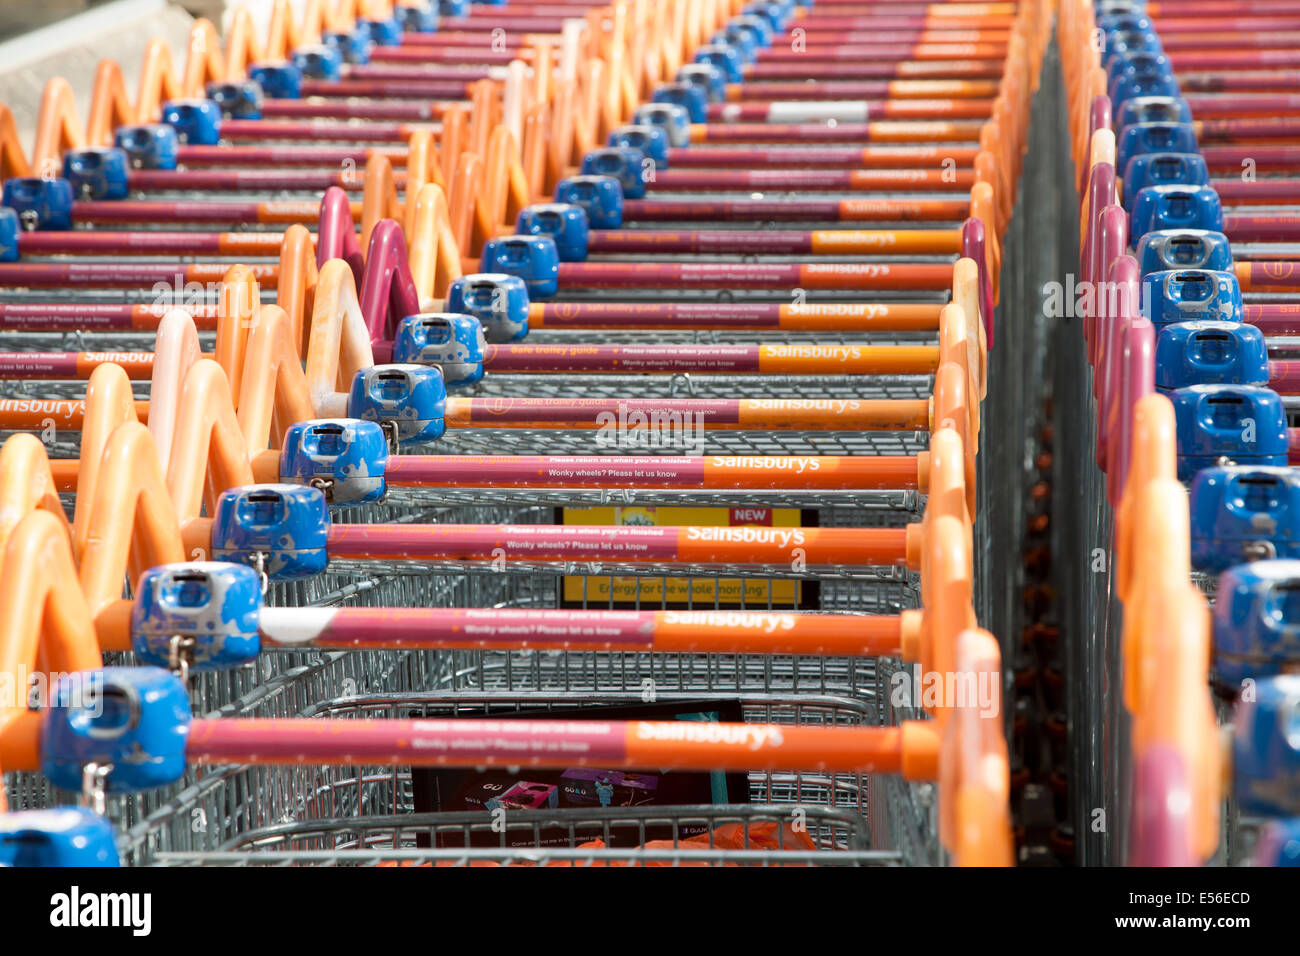 shopping trolley uk sainsburys stock photos shopping trolley uk sainsburys stock images alamy. Black Bedroom Furniture Sets. Home Design Ideas